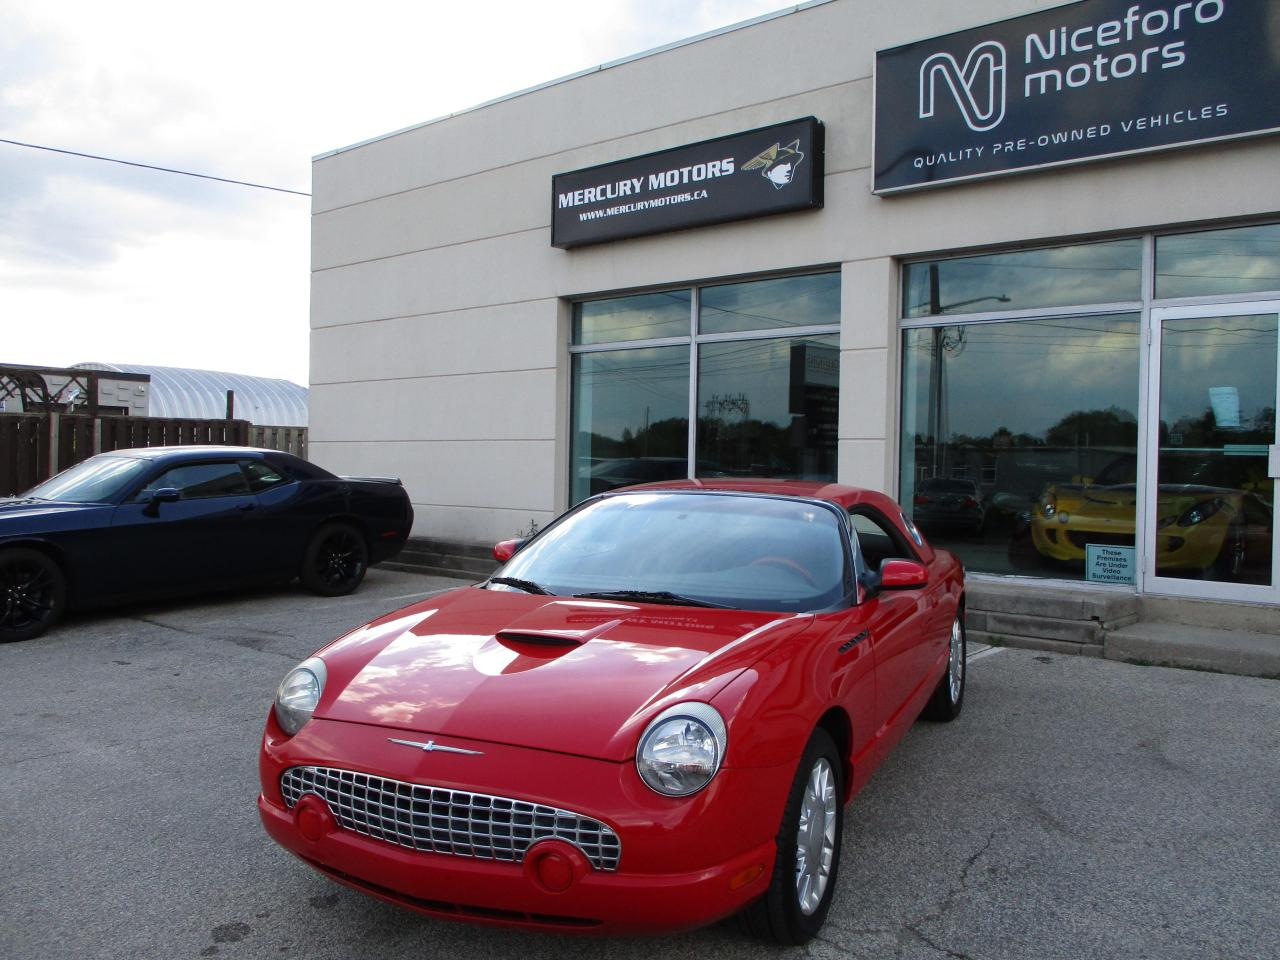 used 2002 ford thunderbird for sale in oakville, ontario carpages.ca